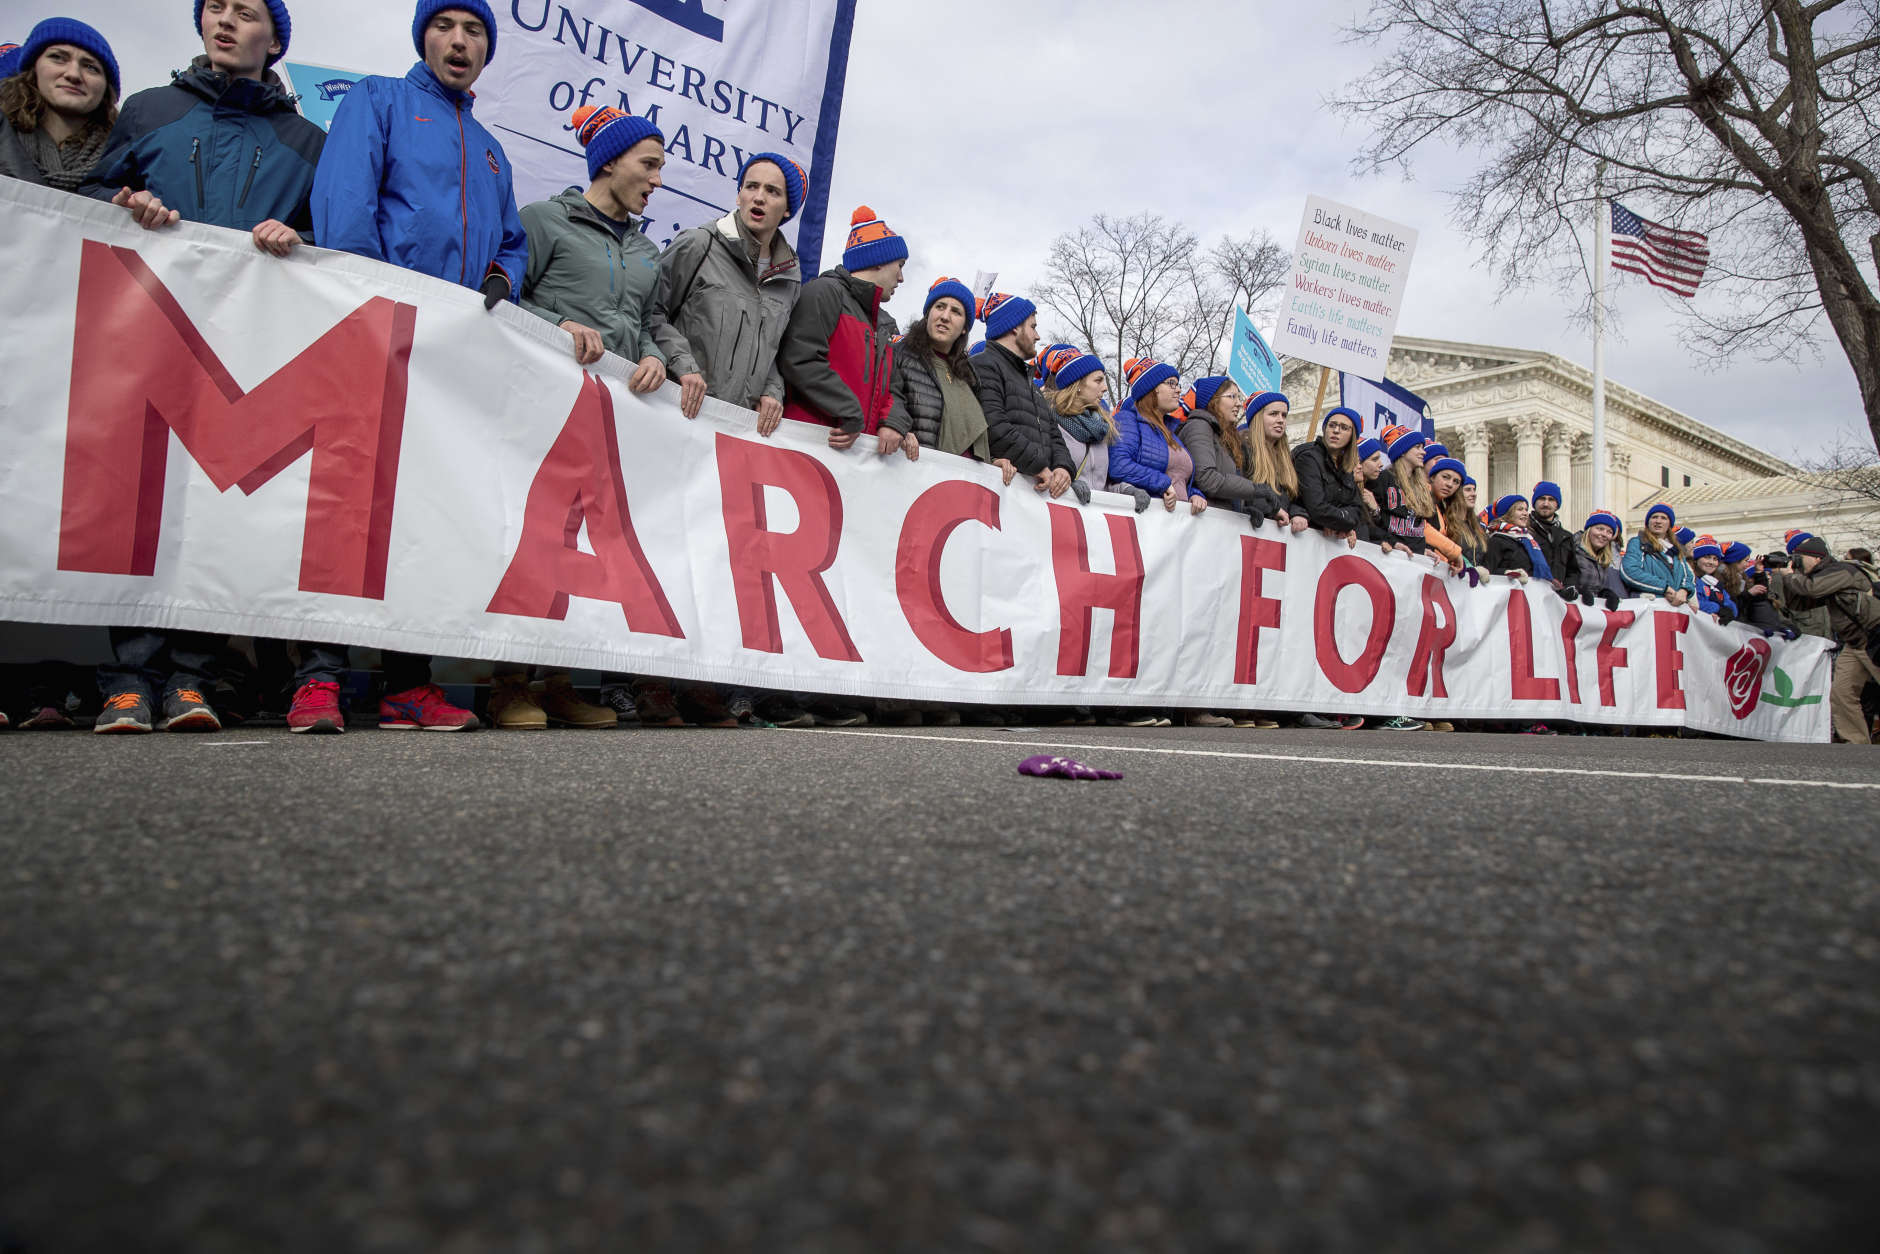 Anti-abortion activists march past the Supreme Court in Washington, Friday, Jan. 27, 2017, during the annual March for Life. Thousands of anti-abortion demonstrators gathered in Washington for an annual march to protest the Supreme Court's landmark 1973 decision that declared a constitutional right to abortion. (AP Photo/Andrew Harnik)